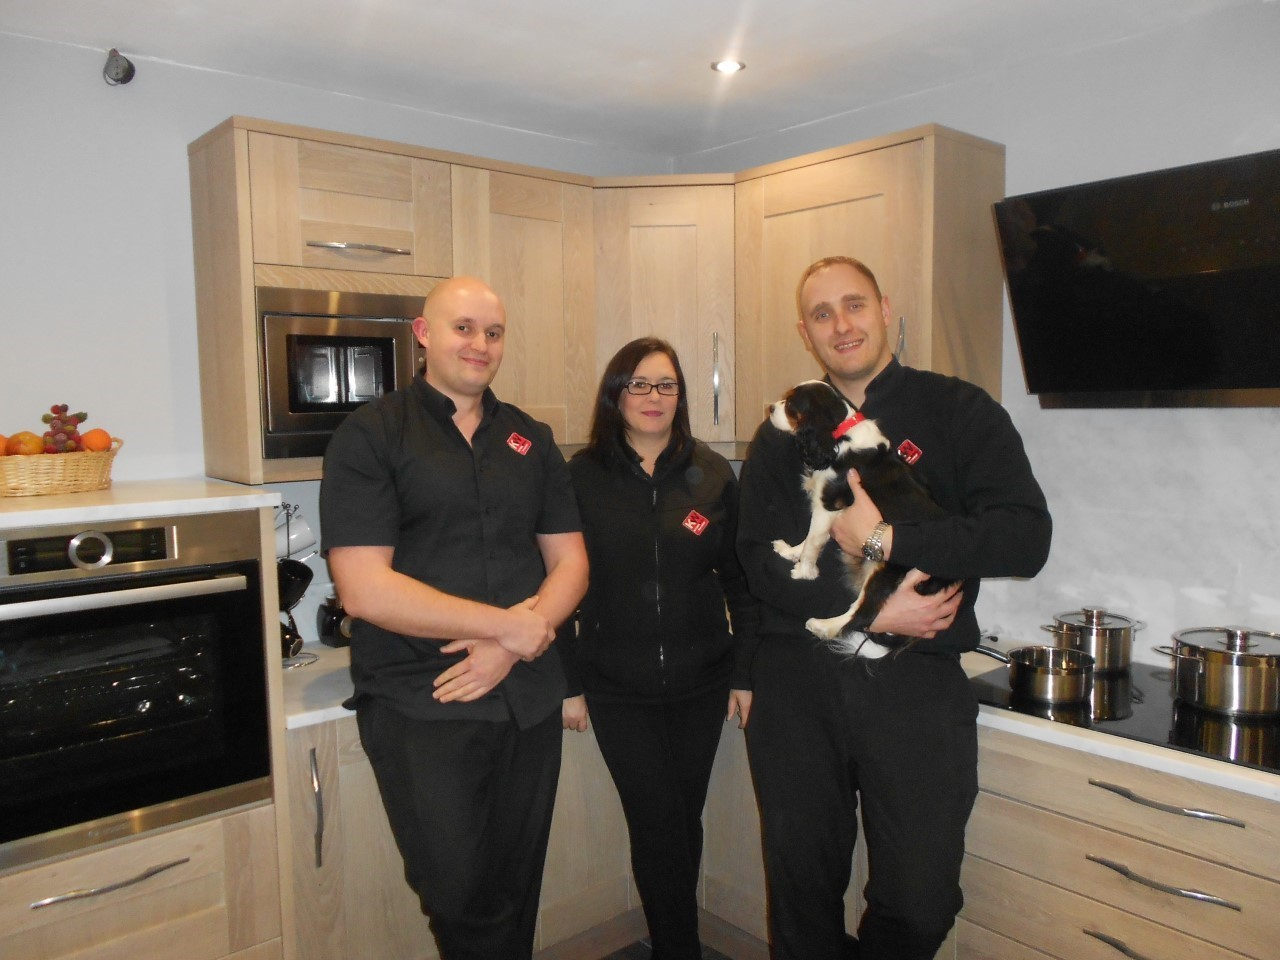 FAMILY: Hayley Sherwood and the team from Kitchen World